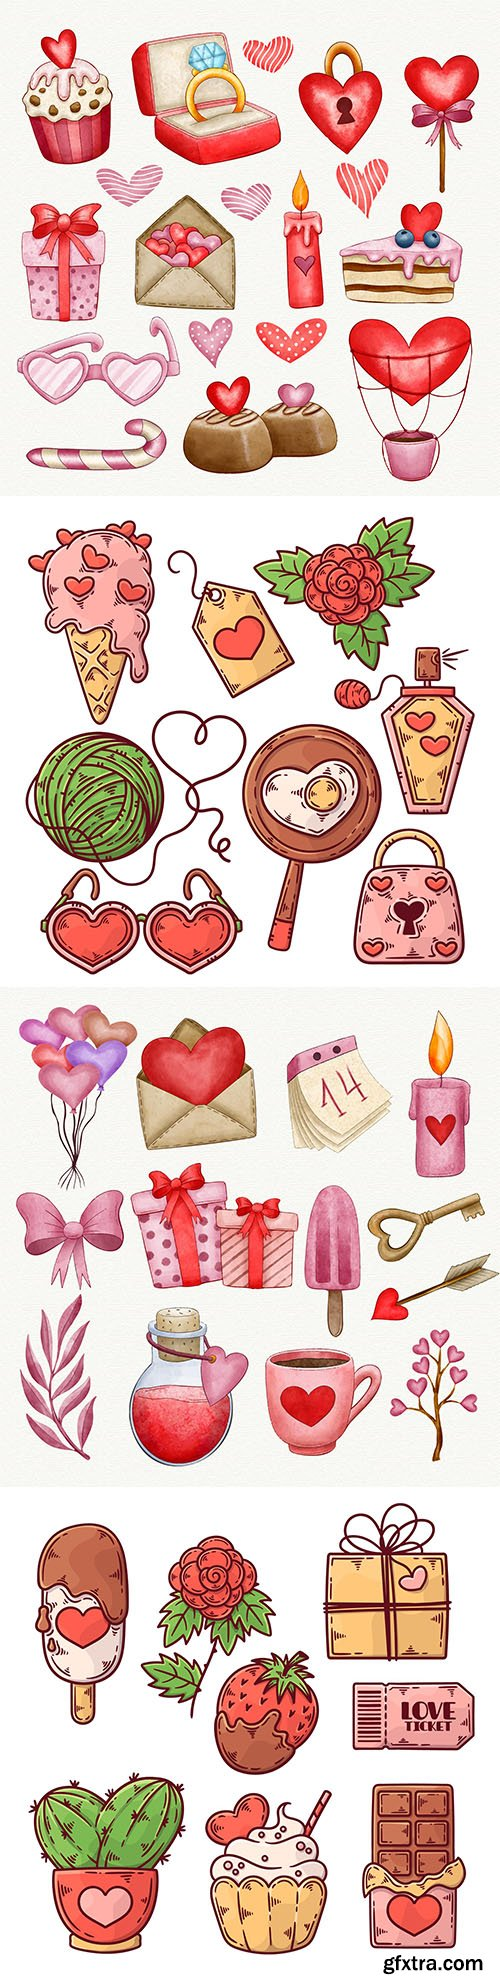 Collection elements for Valentine's Day watercolor design